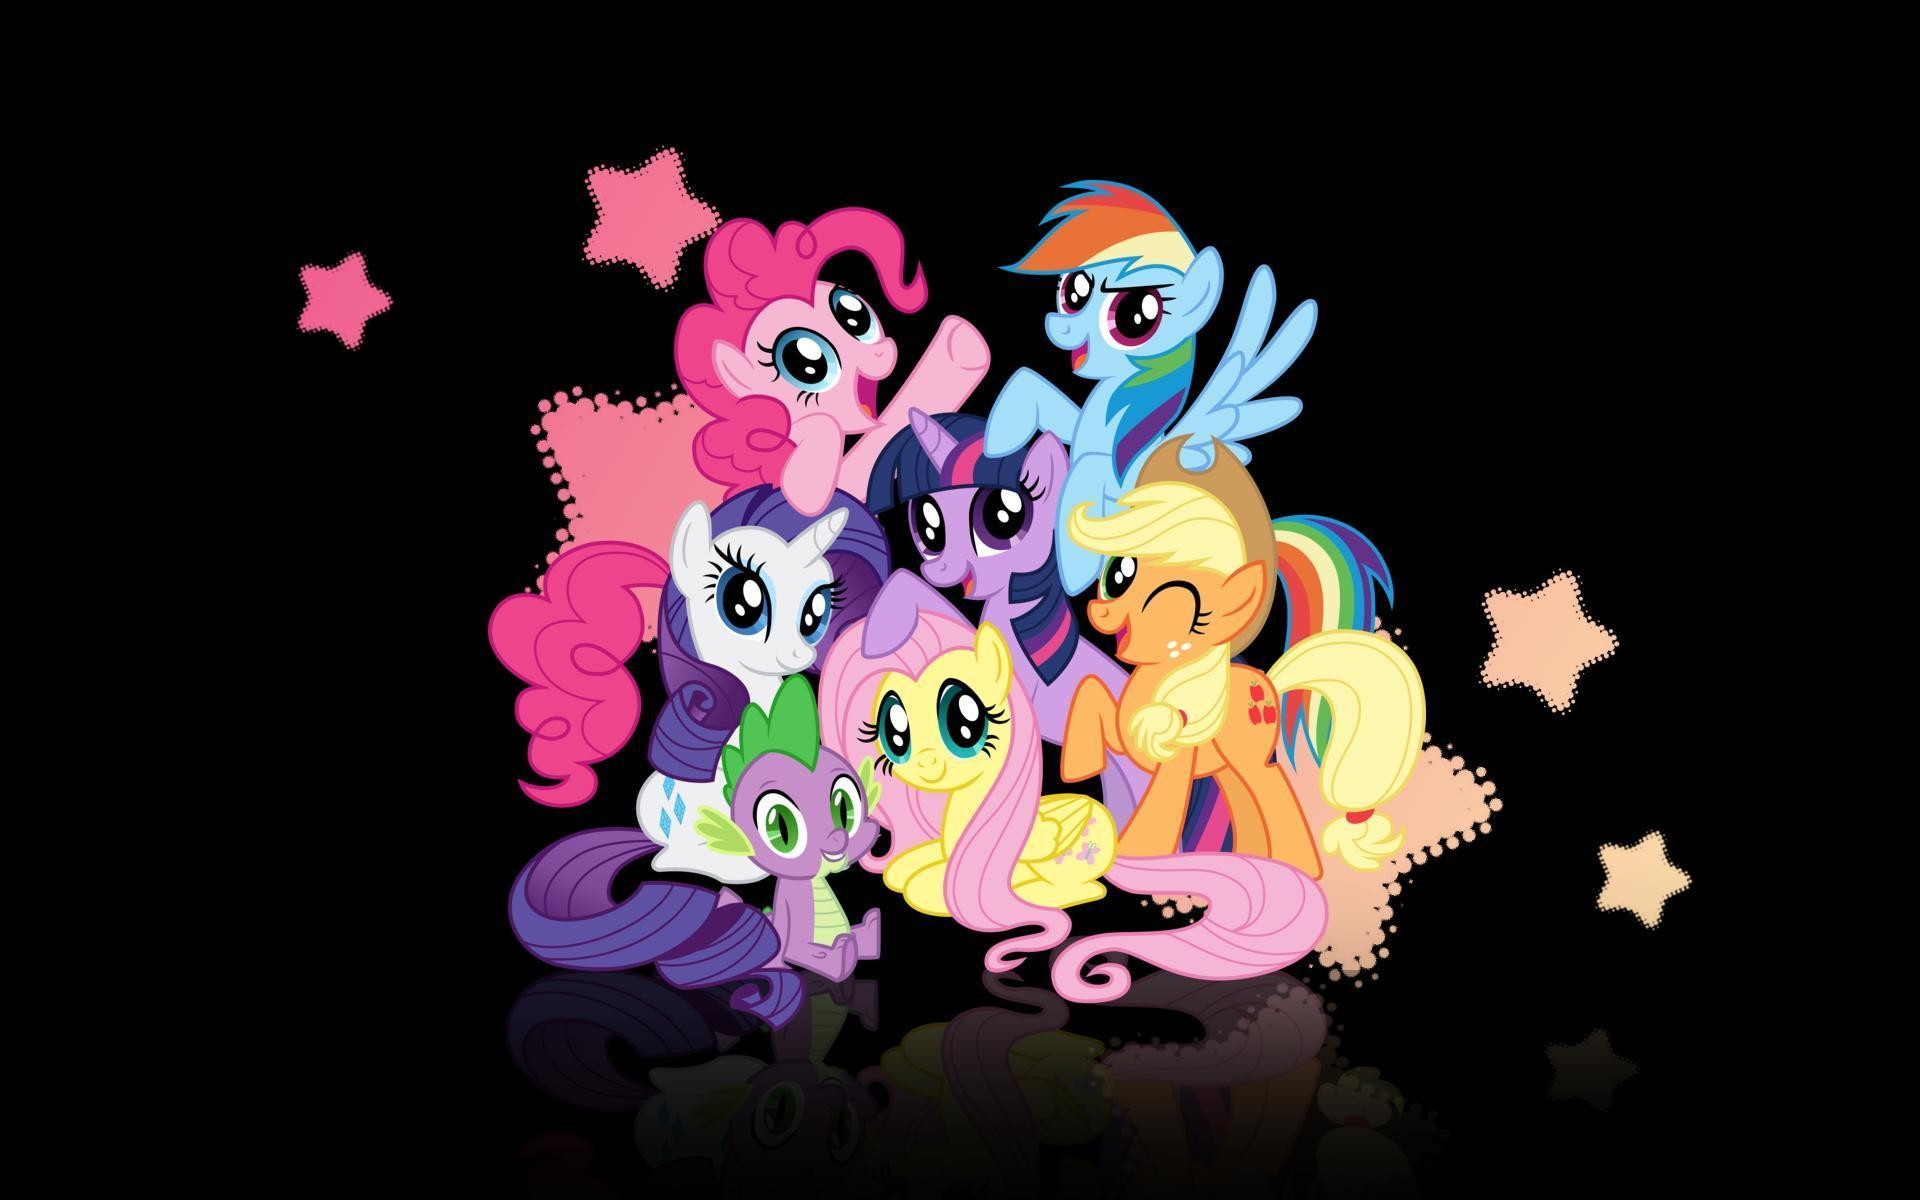 1920x1200 My Little Pony Friendship Is Magic HD Wallpapers | HD Wallpapers |  Pinterest | Hd wallpaper, Wallpaper and Wallpaper desktop